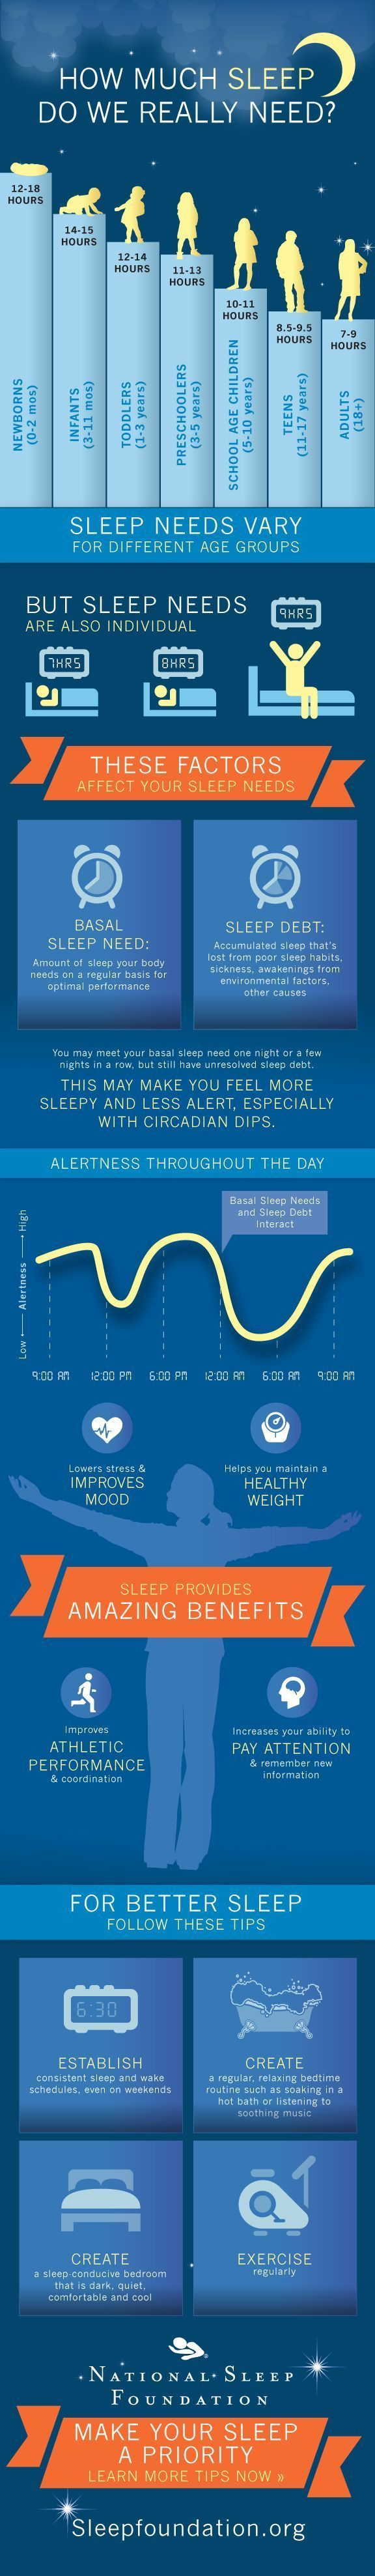 How much sleep do you really need? What about children and teenagers? Find the answers here: http://www.sleepfoundation.org/alert/how-sleep-works/how-much-sleep-do-we-really-need #sleep #teenagesleep